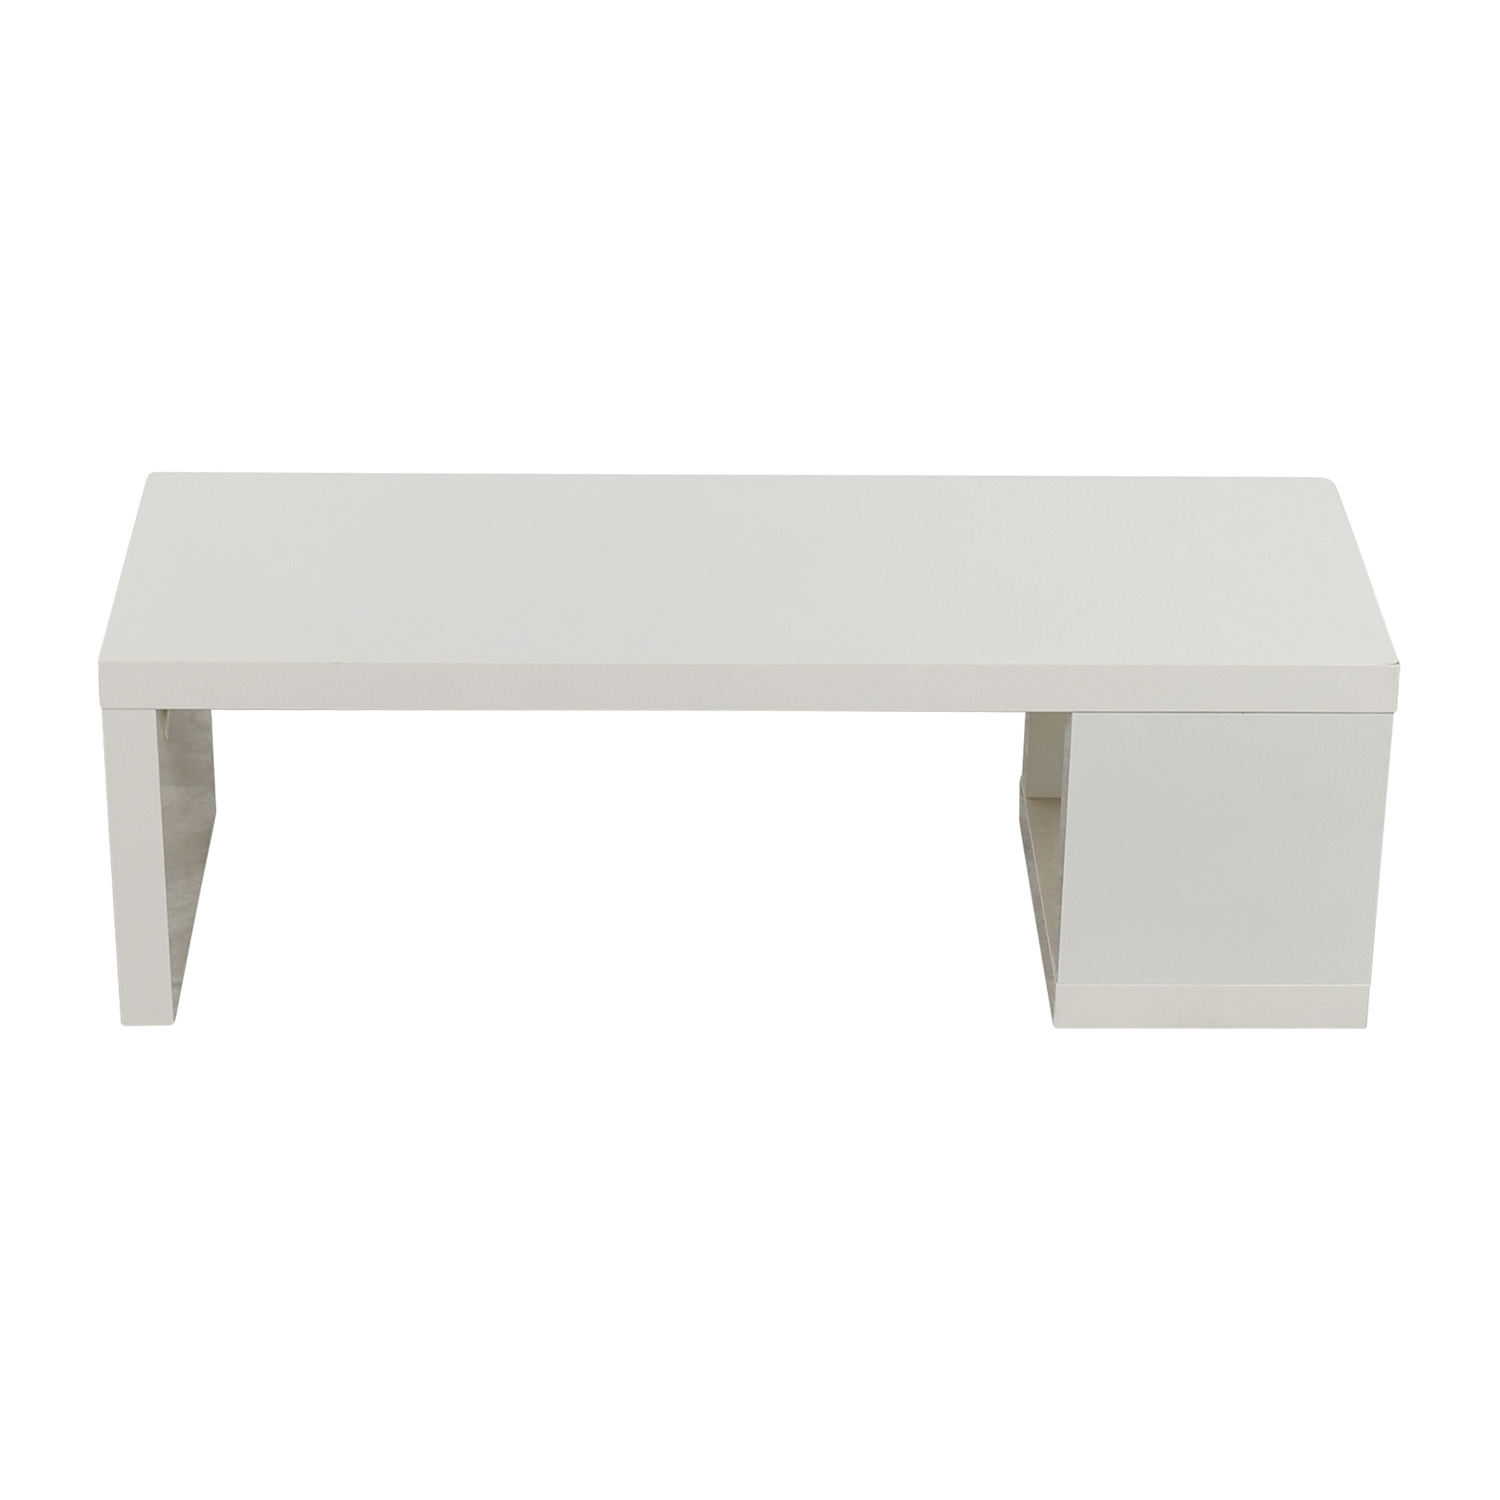 IKEA IKEA Lack White TV Stand coupon